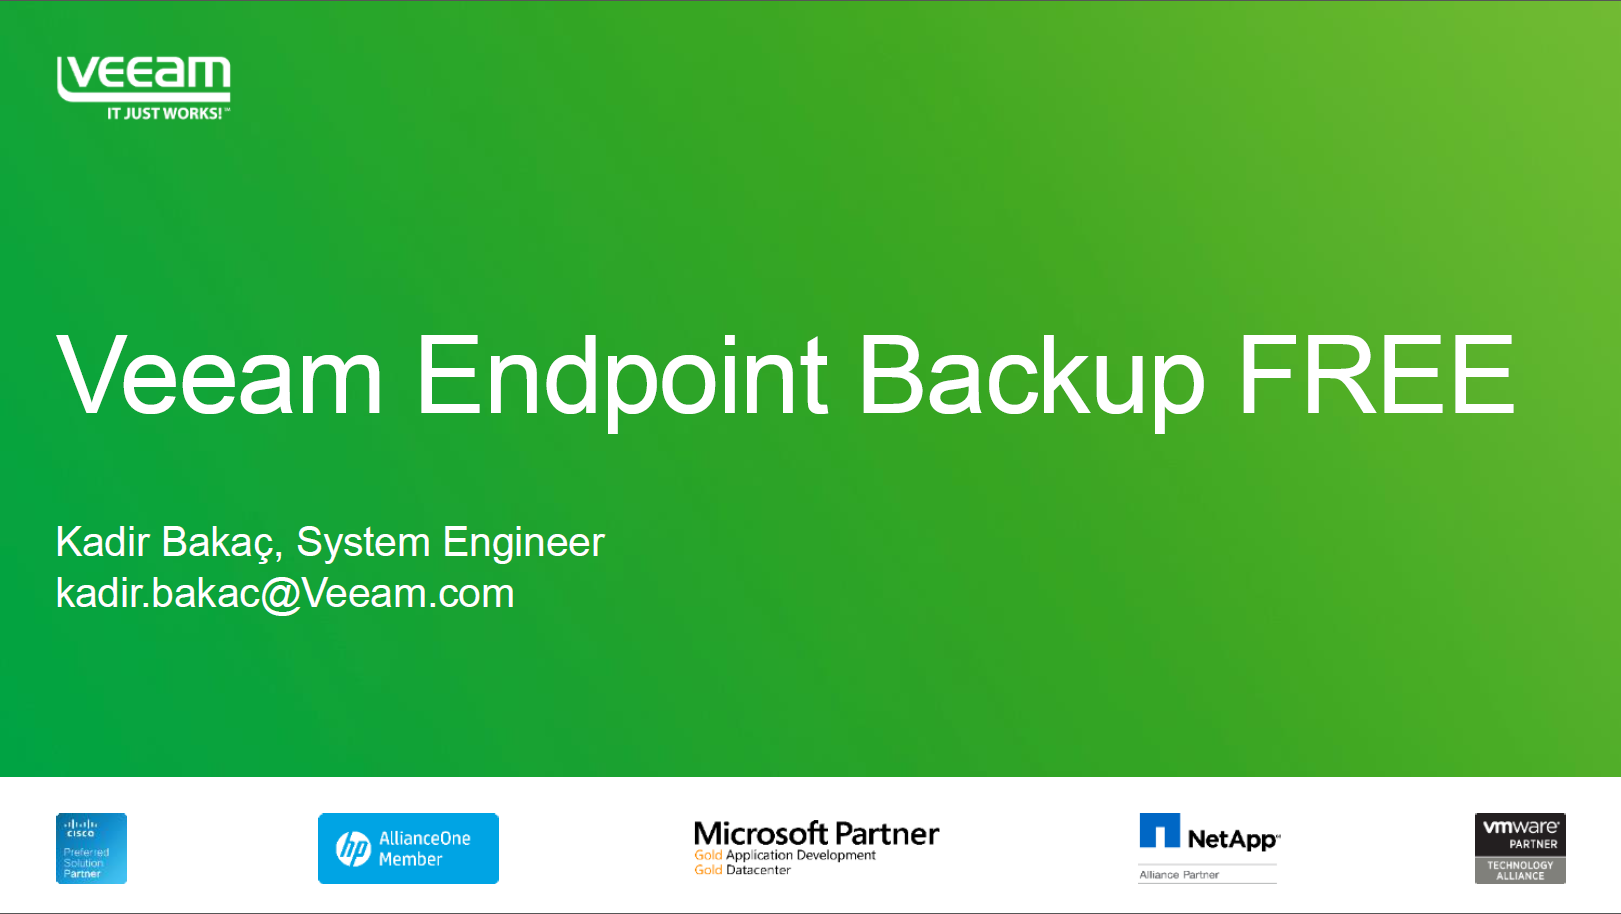 Veeam Endpoint Backup FREE ye Giriş